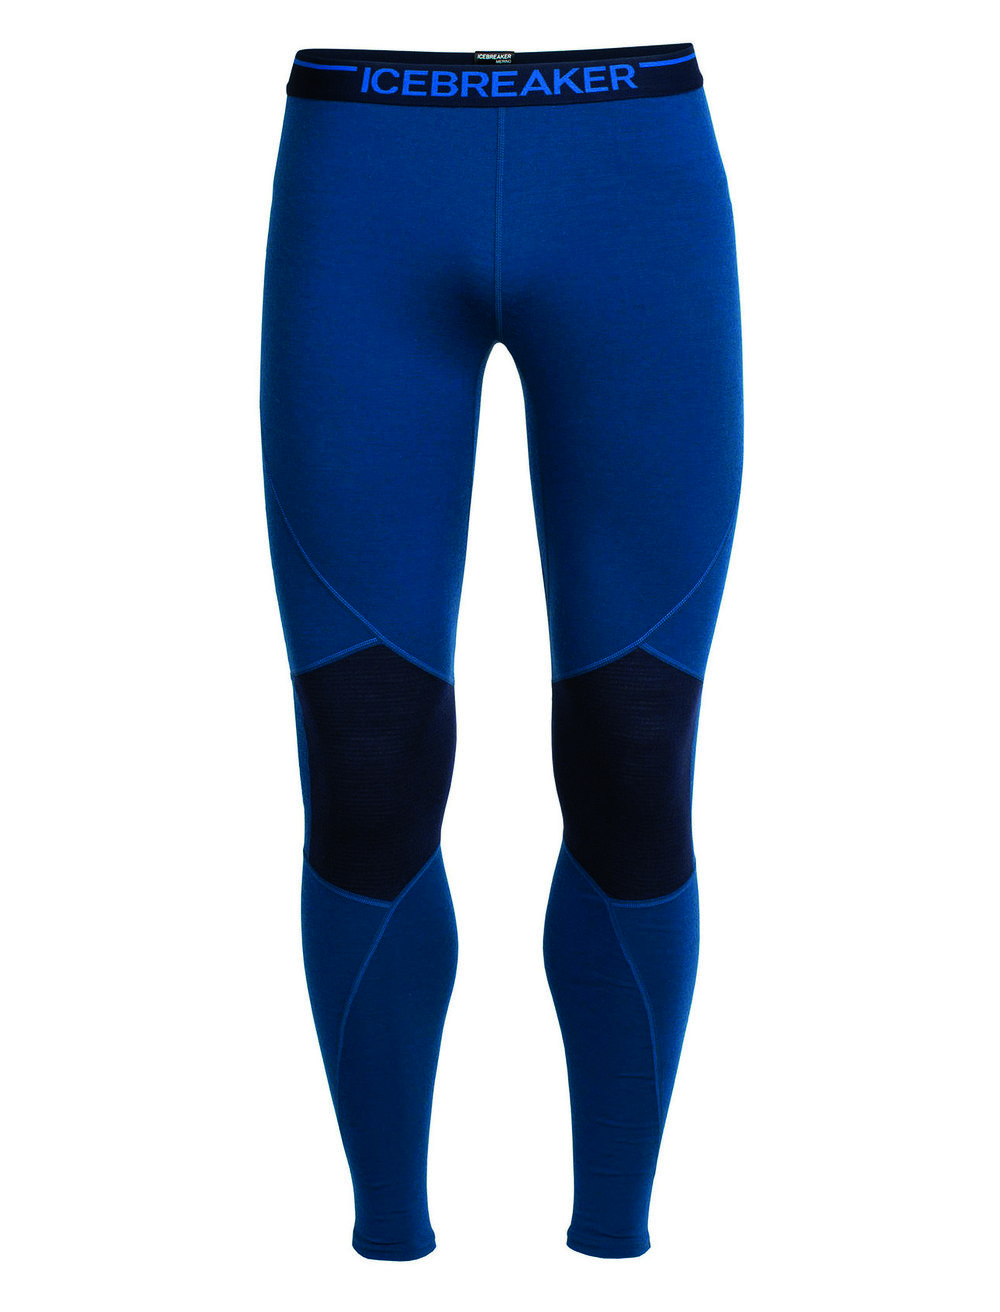 Men's Body Fit Zone Winter Zone Leggings ICEBREAKER, $140